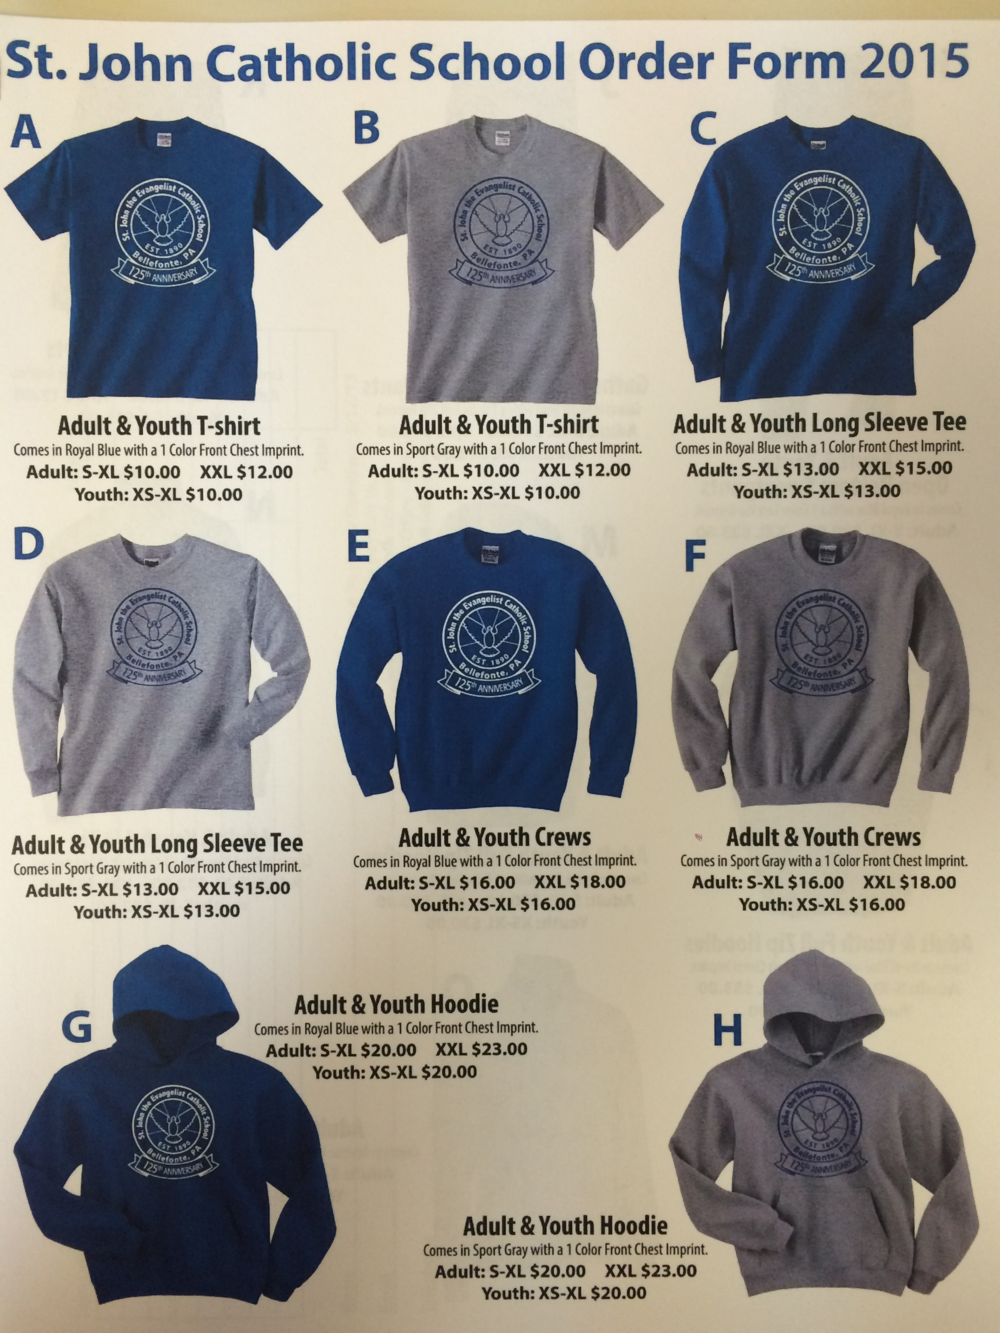 SPIRIT WEAR ITEMS WILL BE ORDERED THROUGHOUT THE YEAR AS WE ACCUMULATE 12 OR MORE ITEMS.